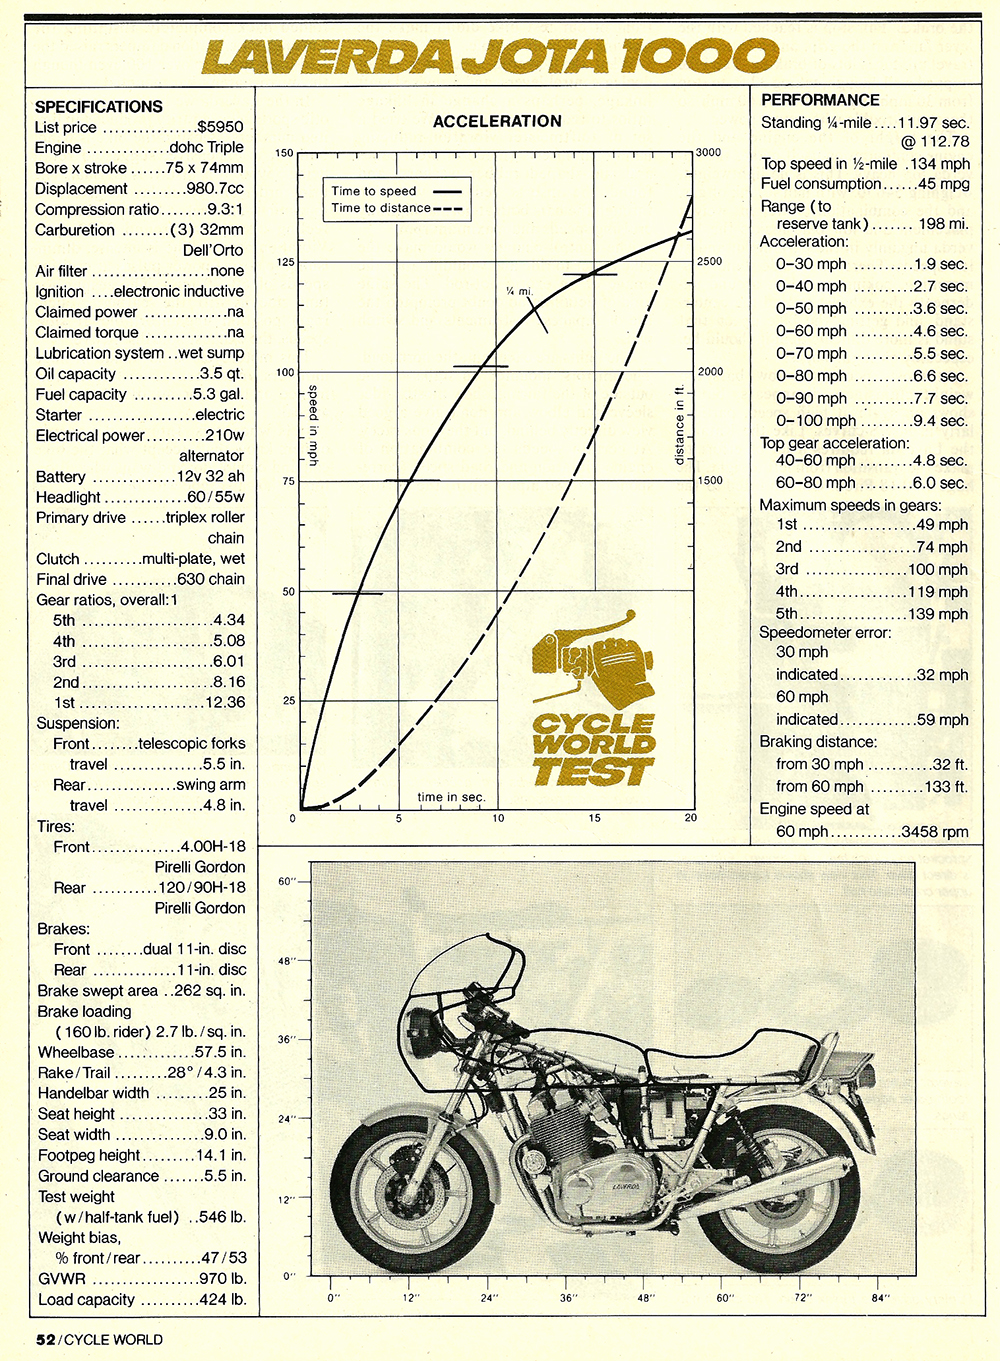 1982 Laverda Jota 1000 road test 7.jpg